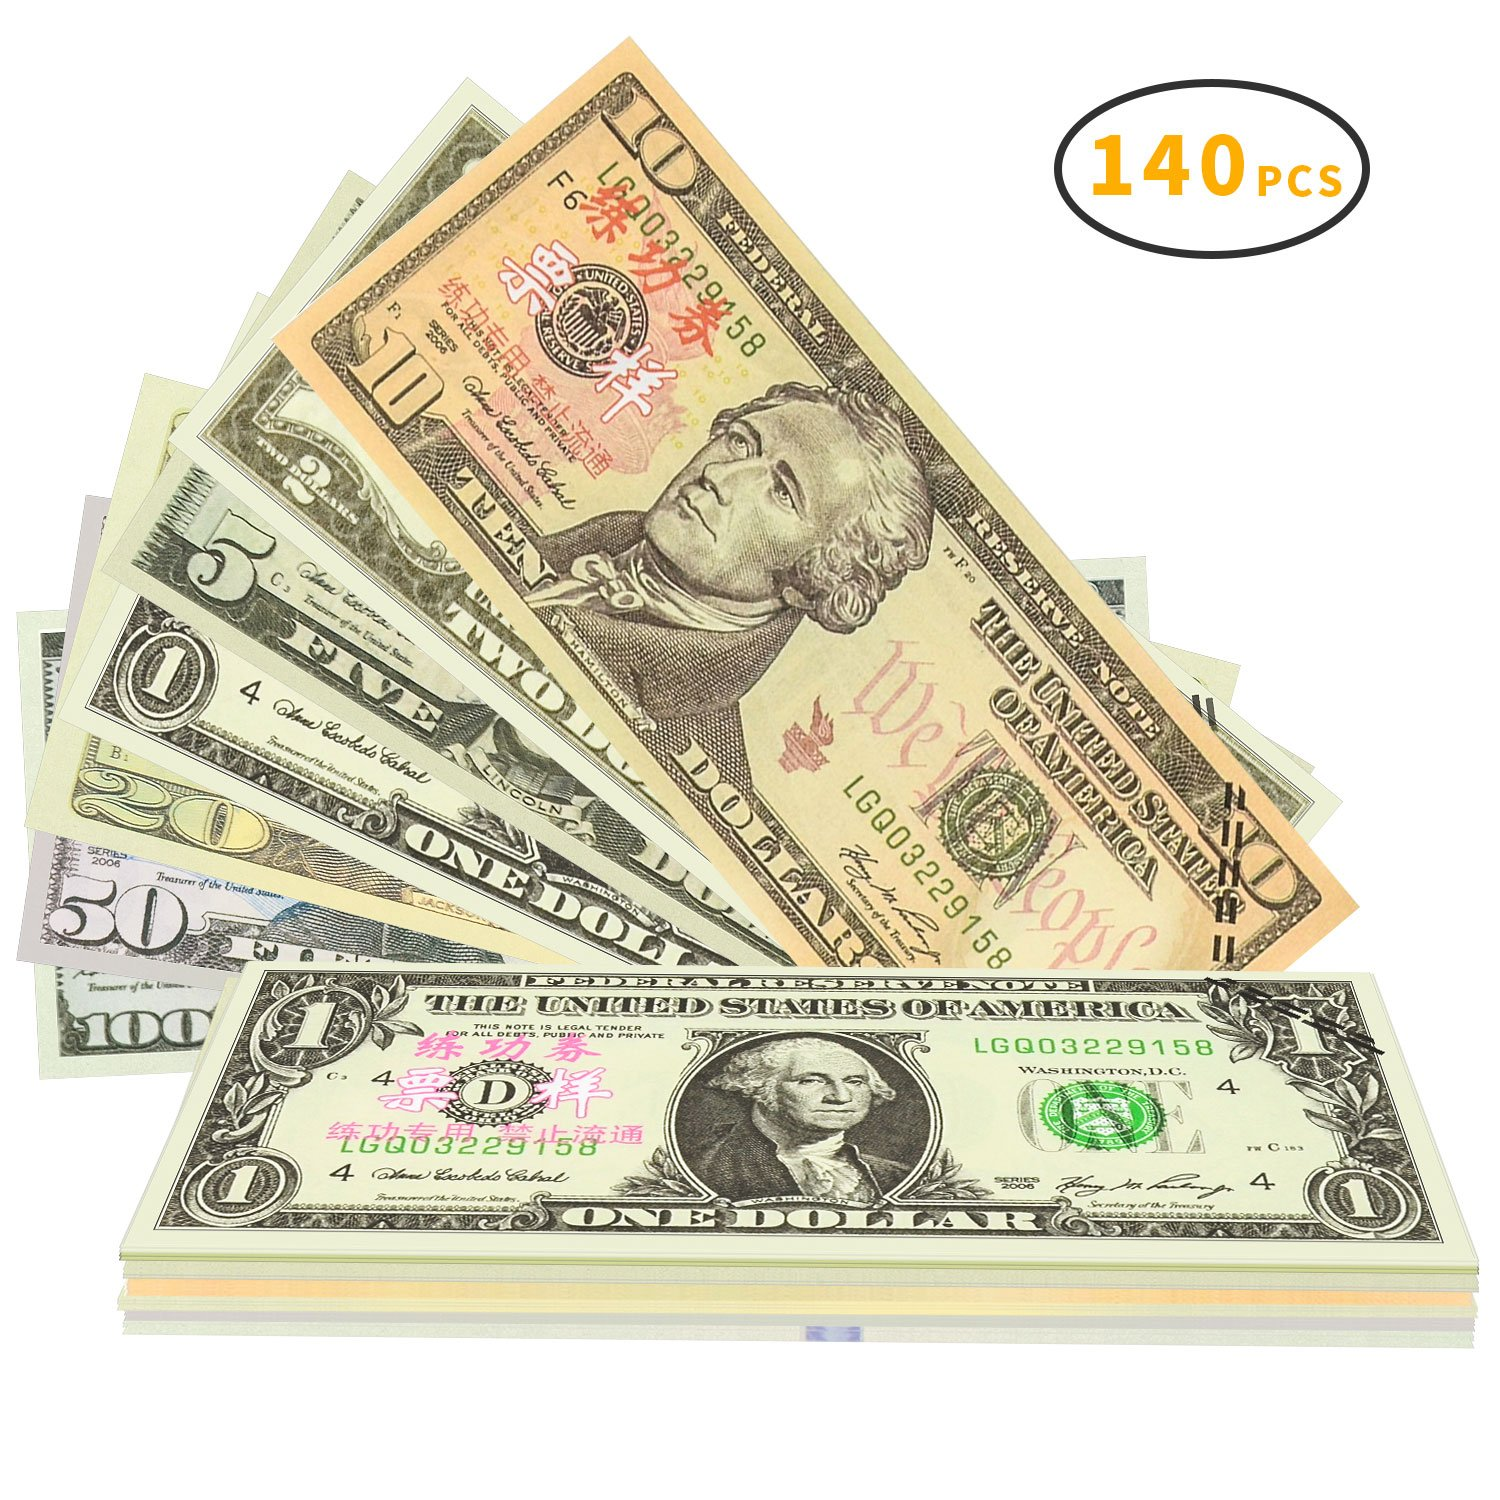 Winkeyes 140pcs Prop Money Play Money Realistic Copy Paper Money Full Print 2 Sided for Movie Game Kids School Students